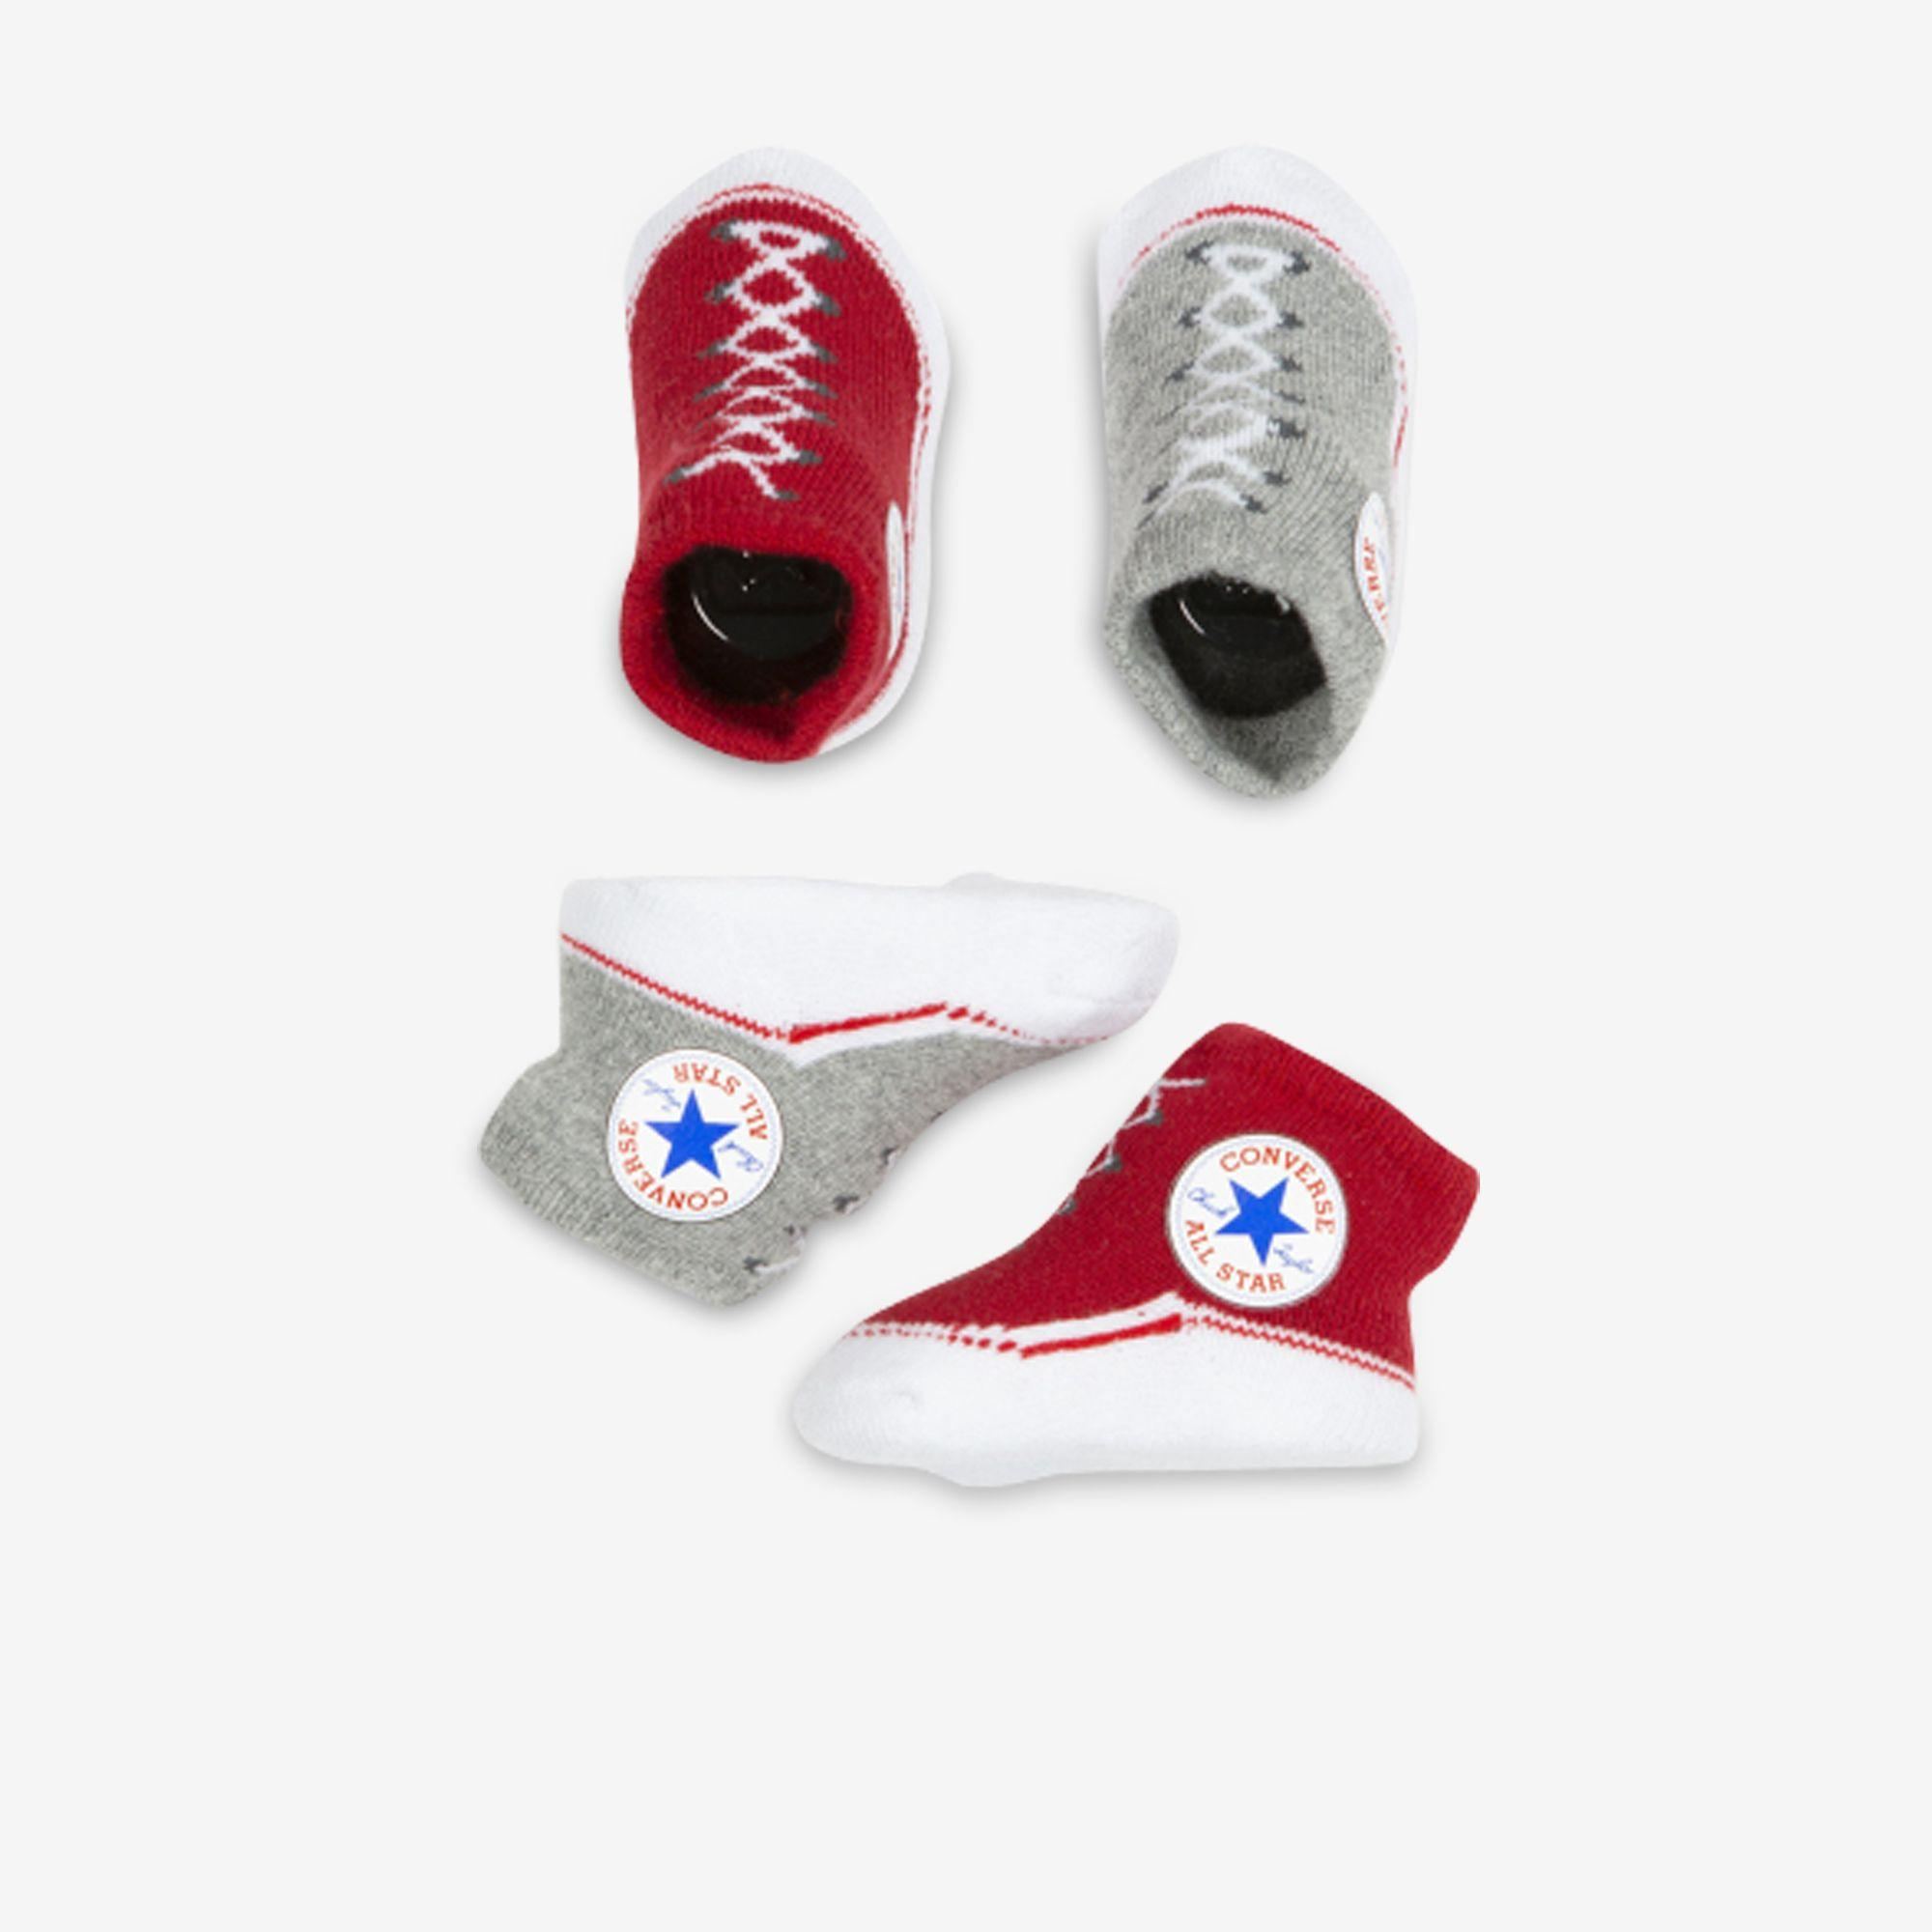 Converse Outlet Updated COVID 19 Hours & Services 33